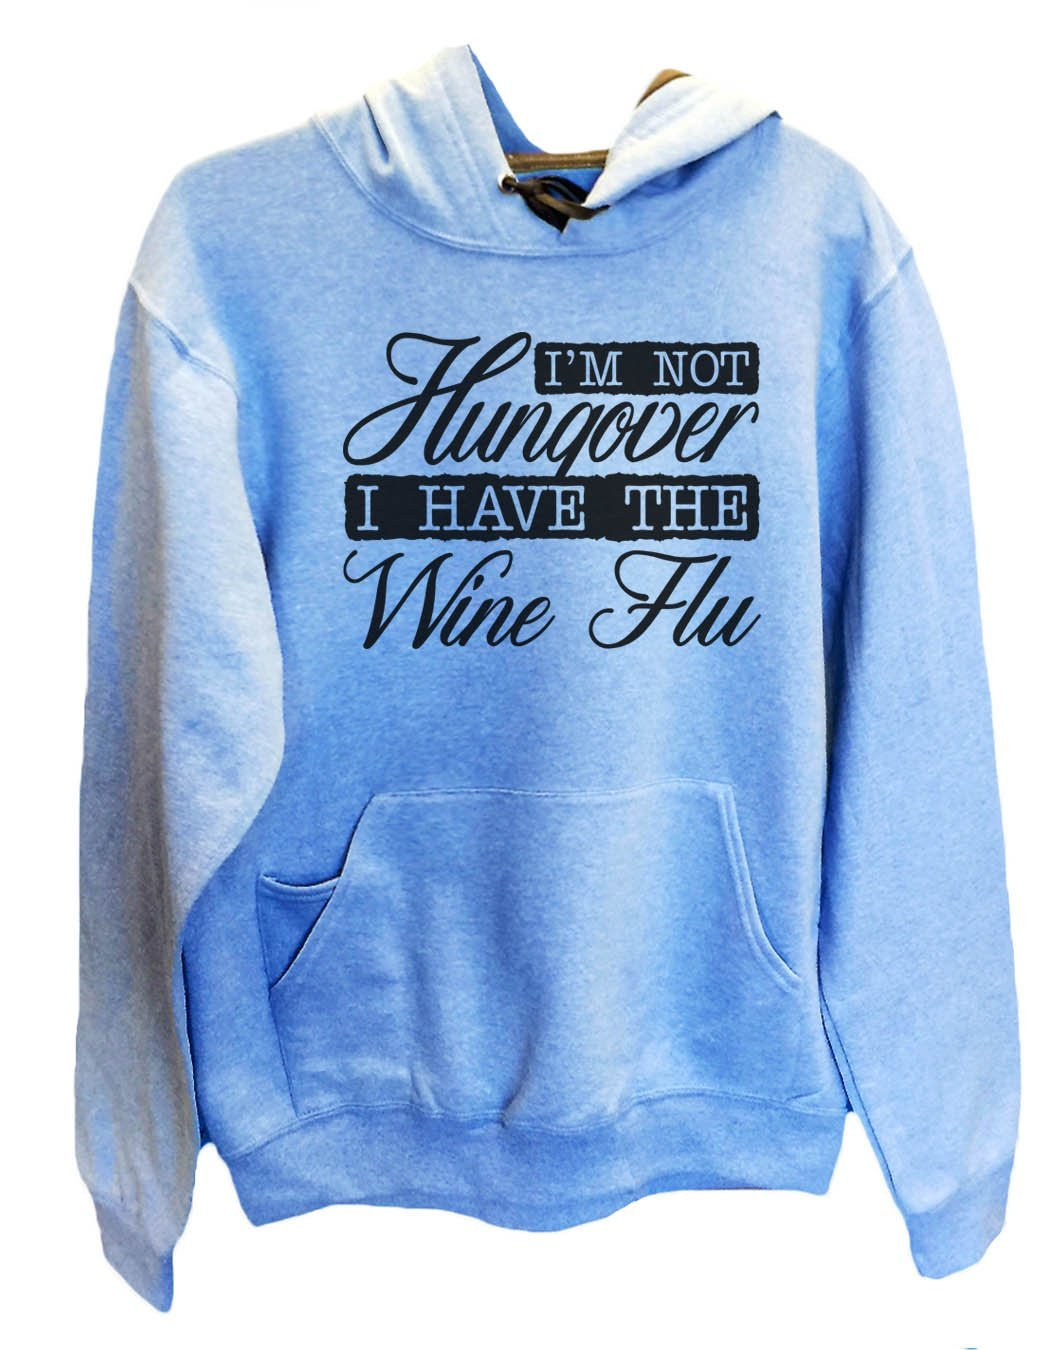 UNISEX HOODIE - I'm Not Hungover I Have The Wine Flu - FUNNY MENS AND WOMENS HOODED SWEATSHIRTS - 2139 Funny Shirt